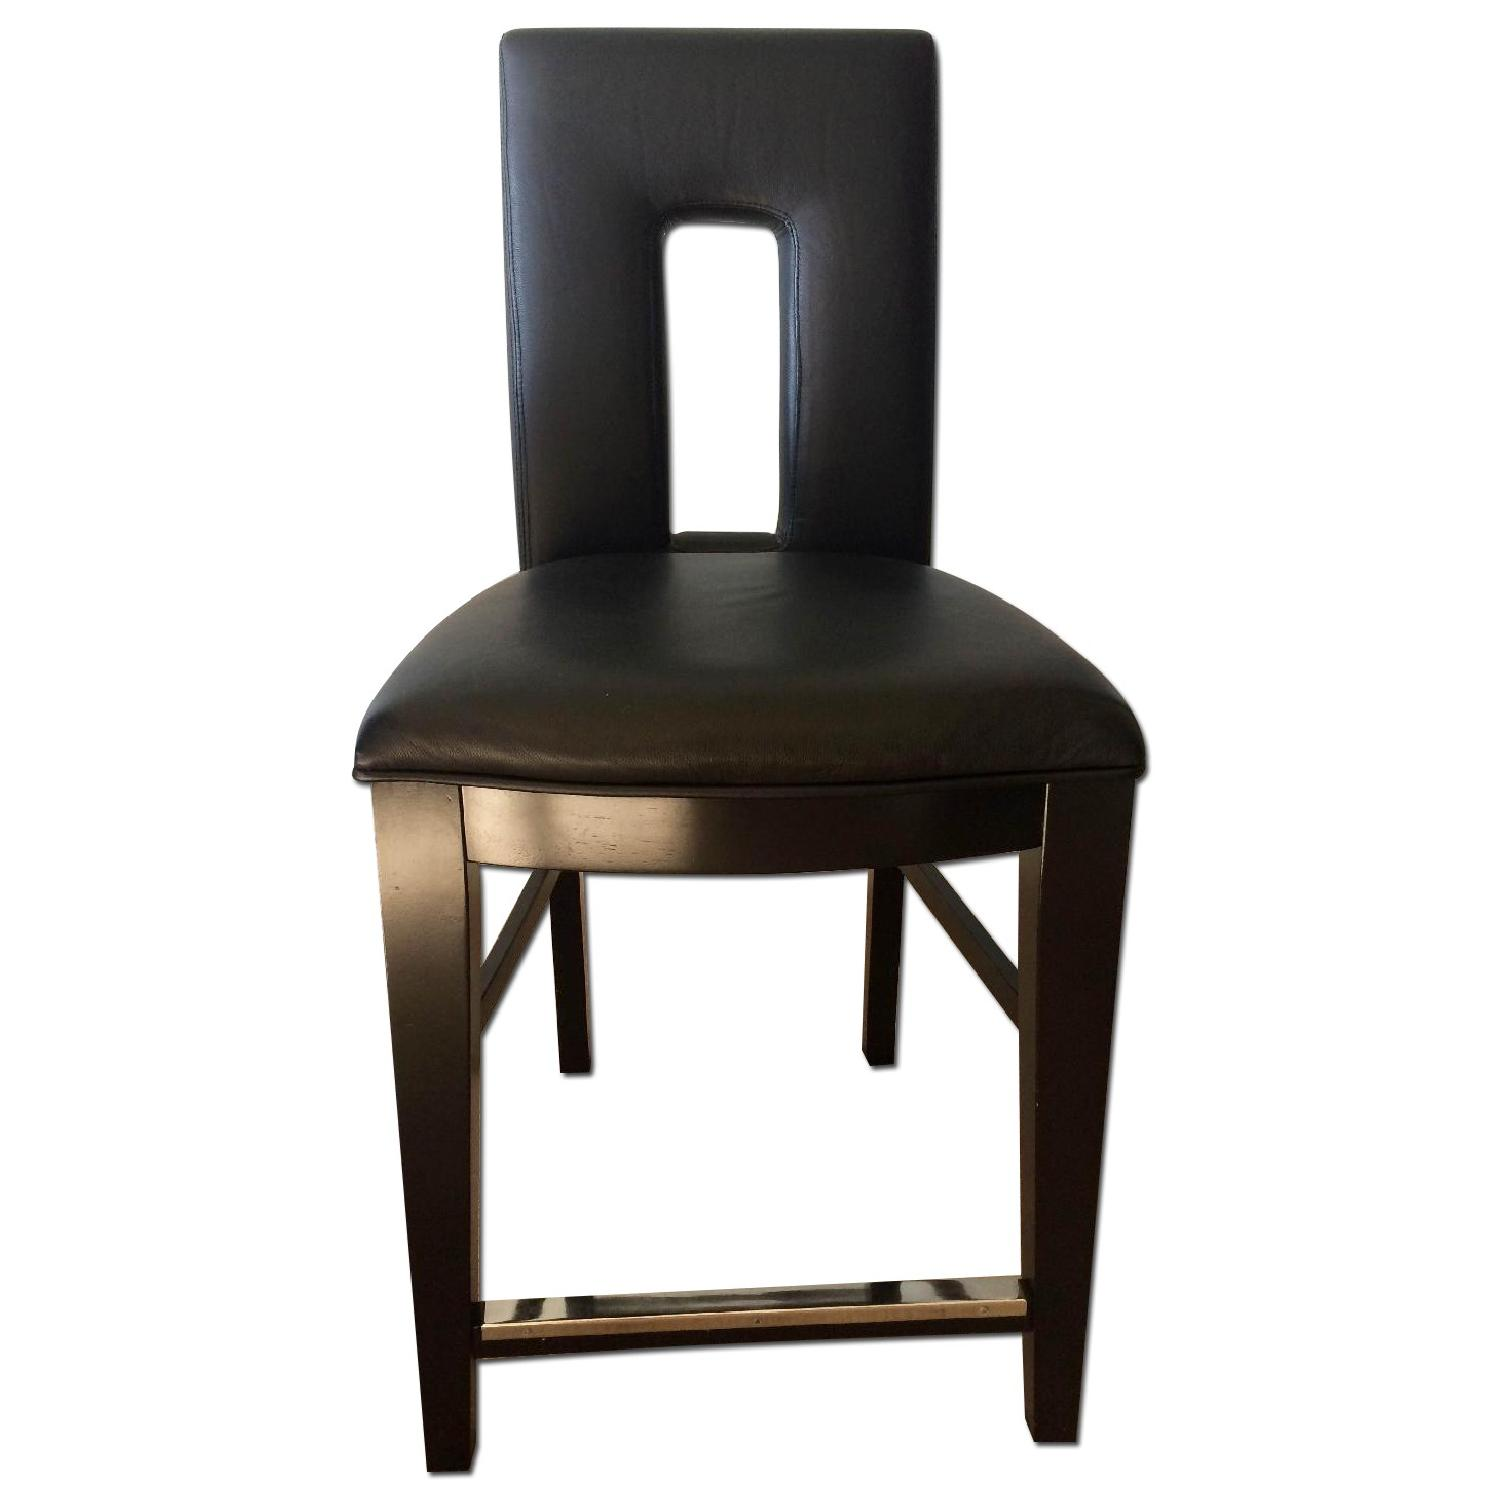 Broyhill Italian Leather Counter-Height Chairs - image-0